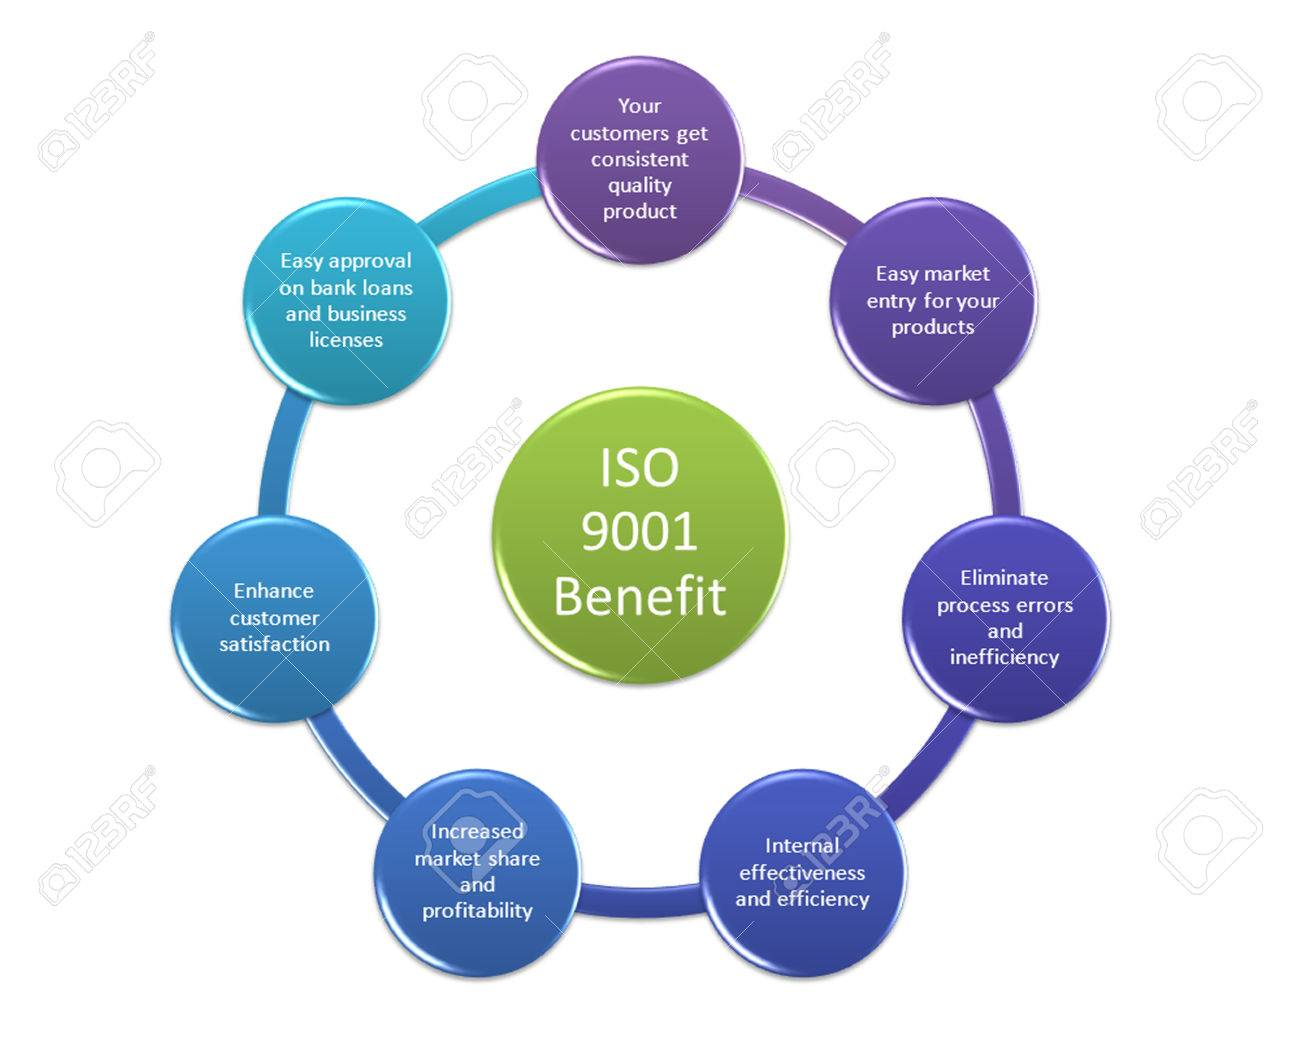 ISO 9001 Benefit Concept Diagram Stock Photo, Picture And Royalty Free  Image. Image 70361353.